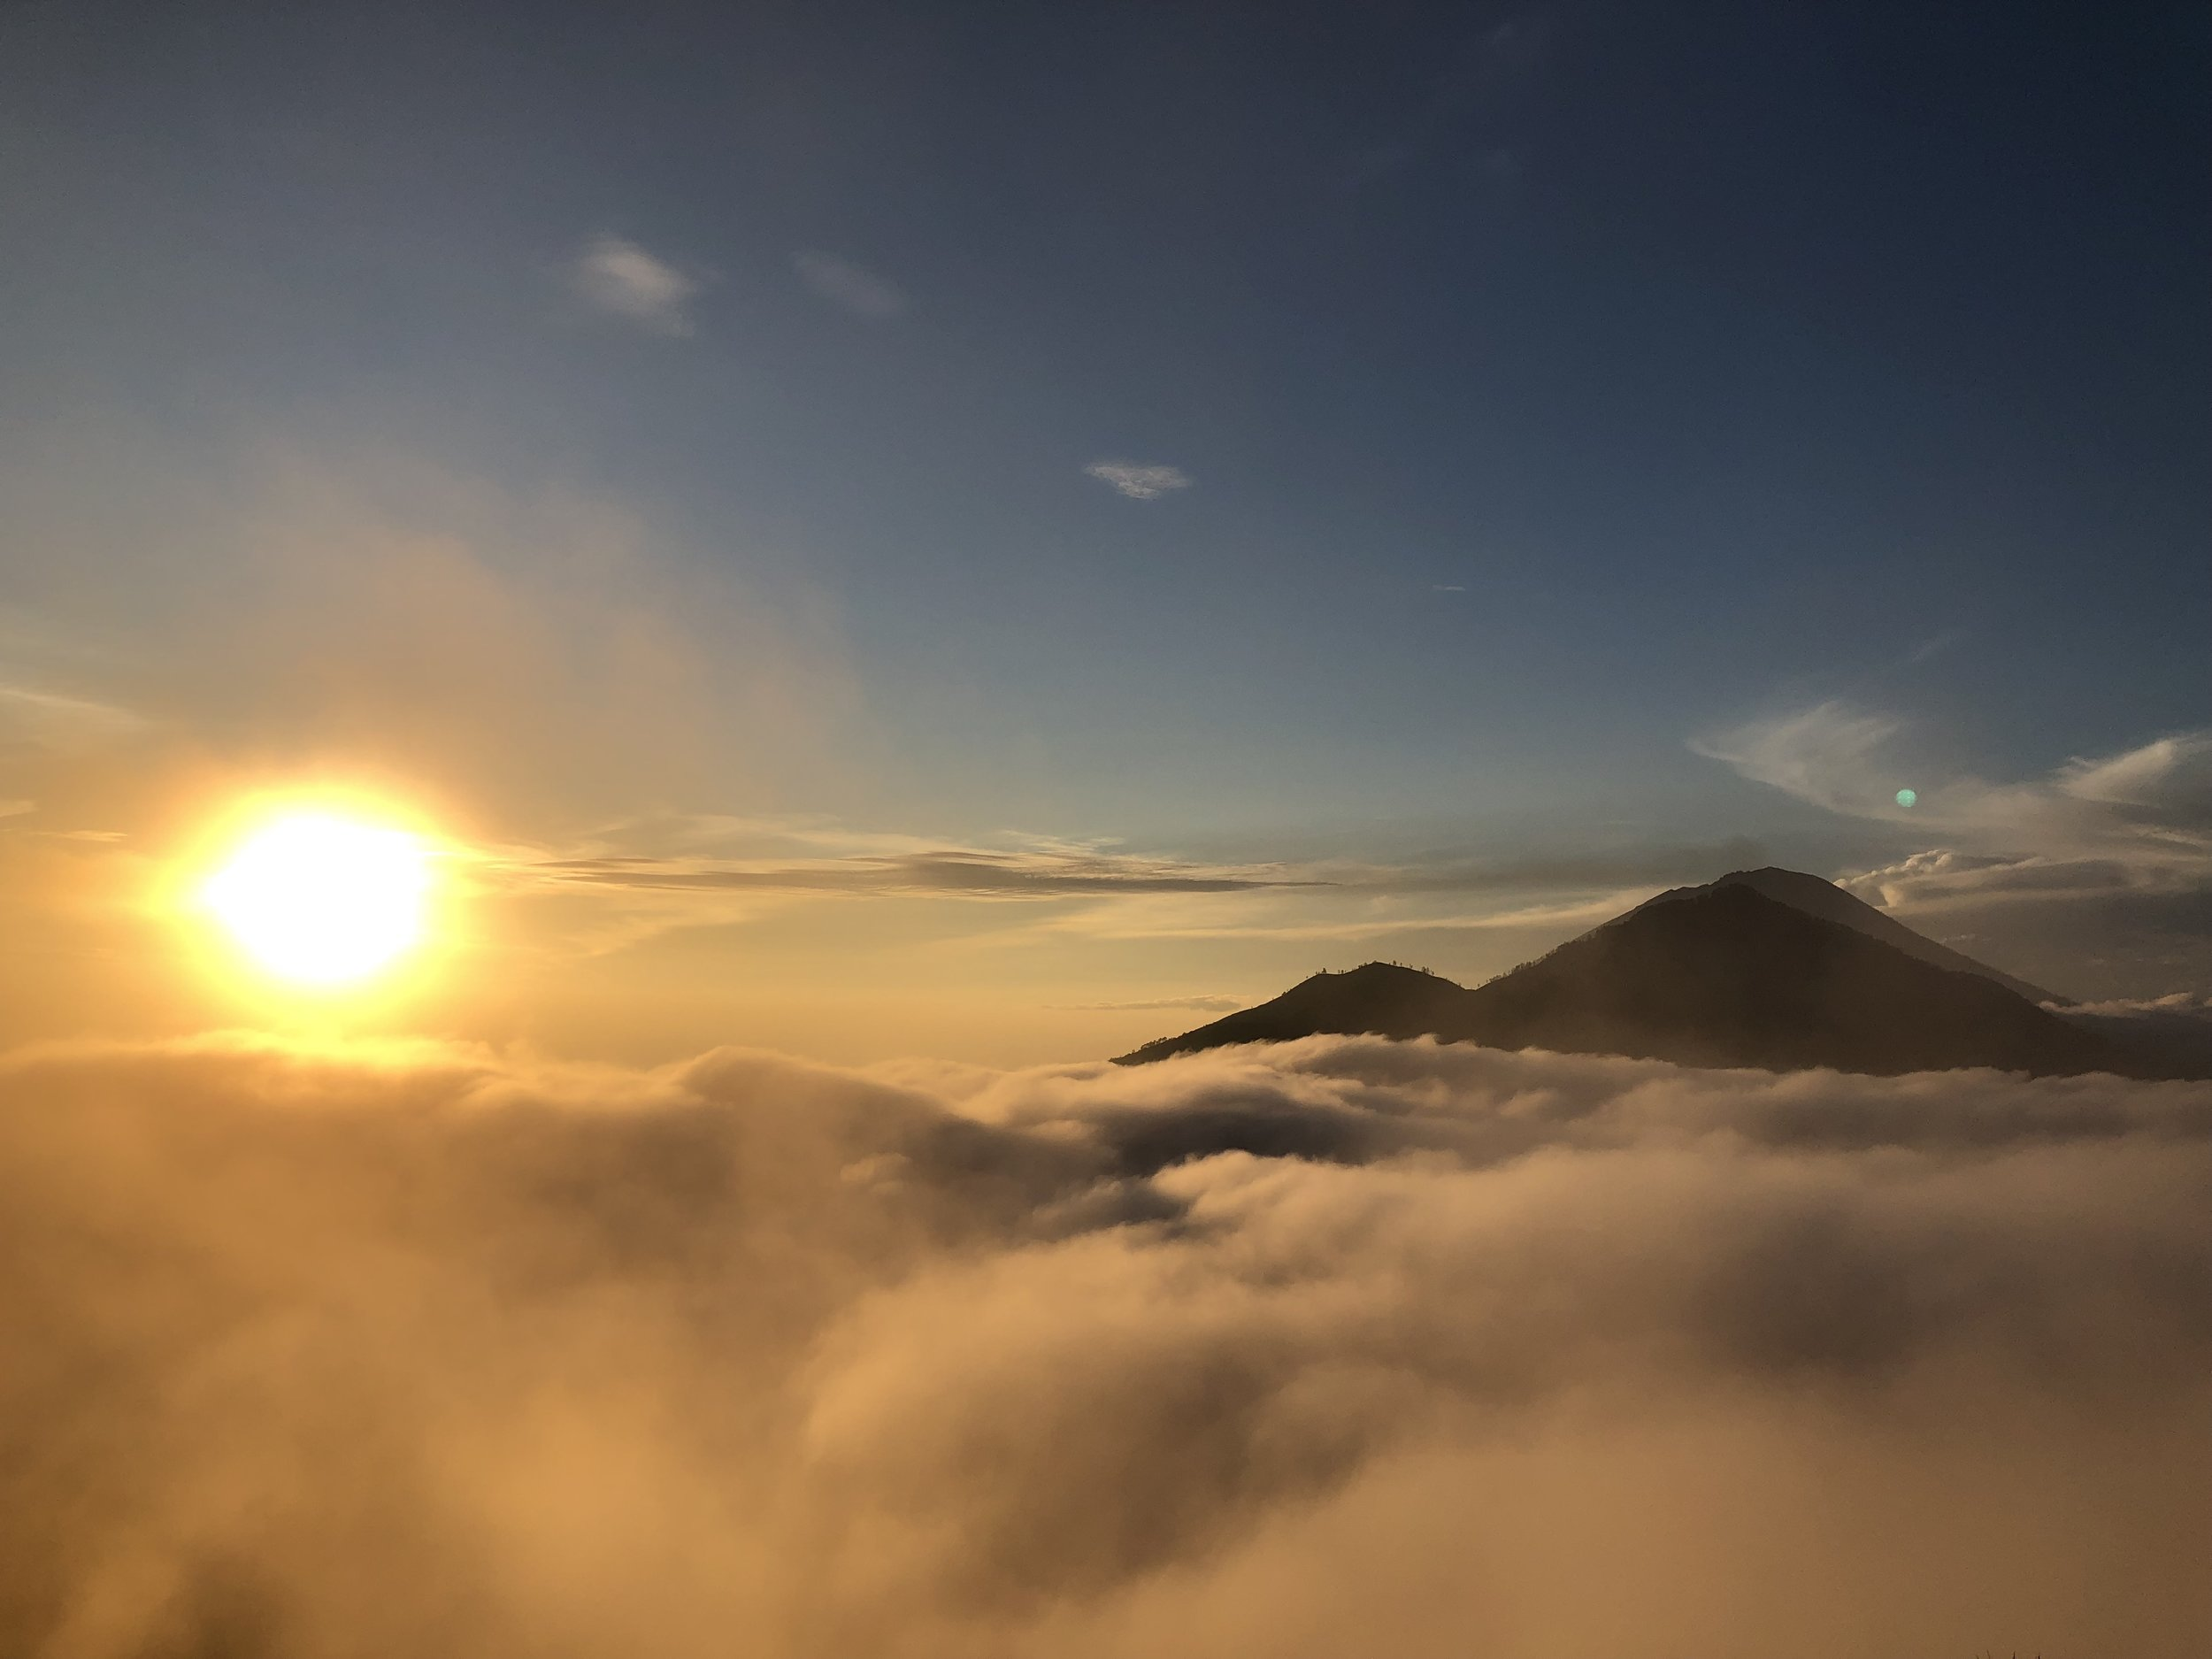 Sunrise hike on Mount Batur